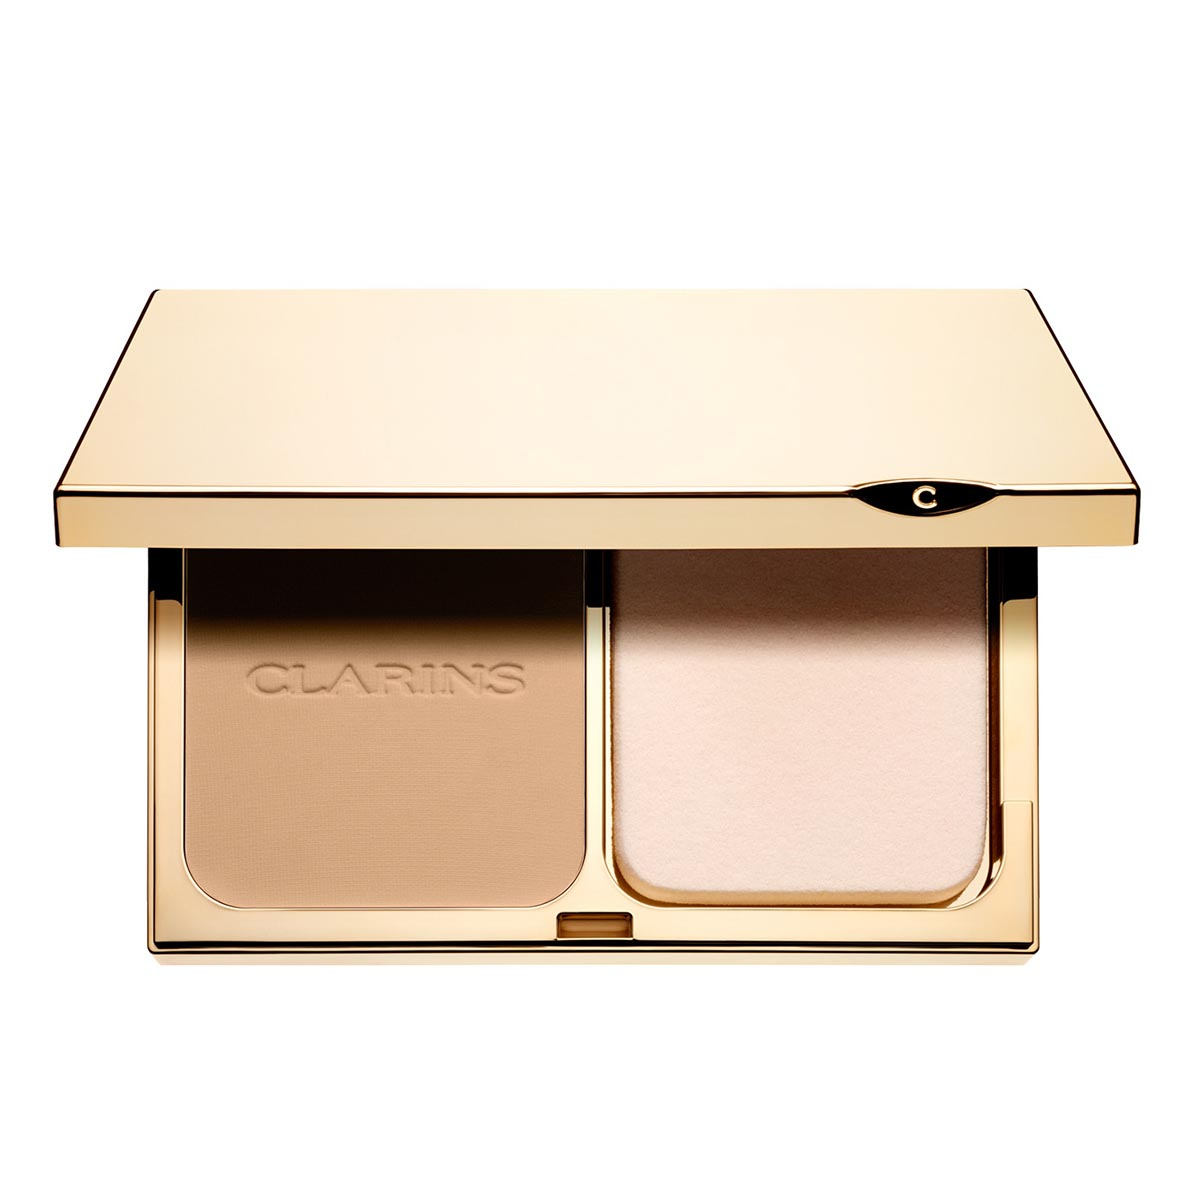 Clarins everlasting compact foundation 114 cappuccino